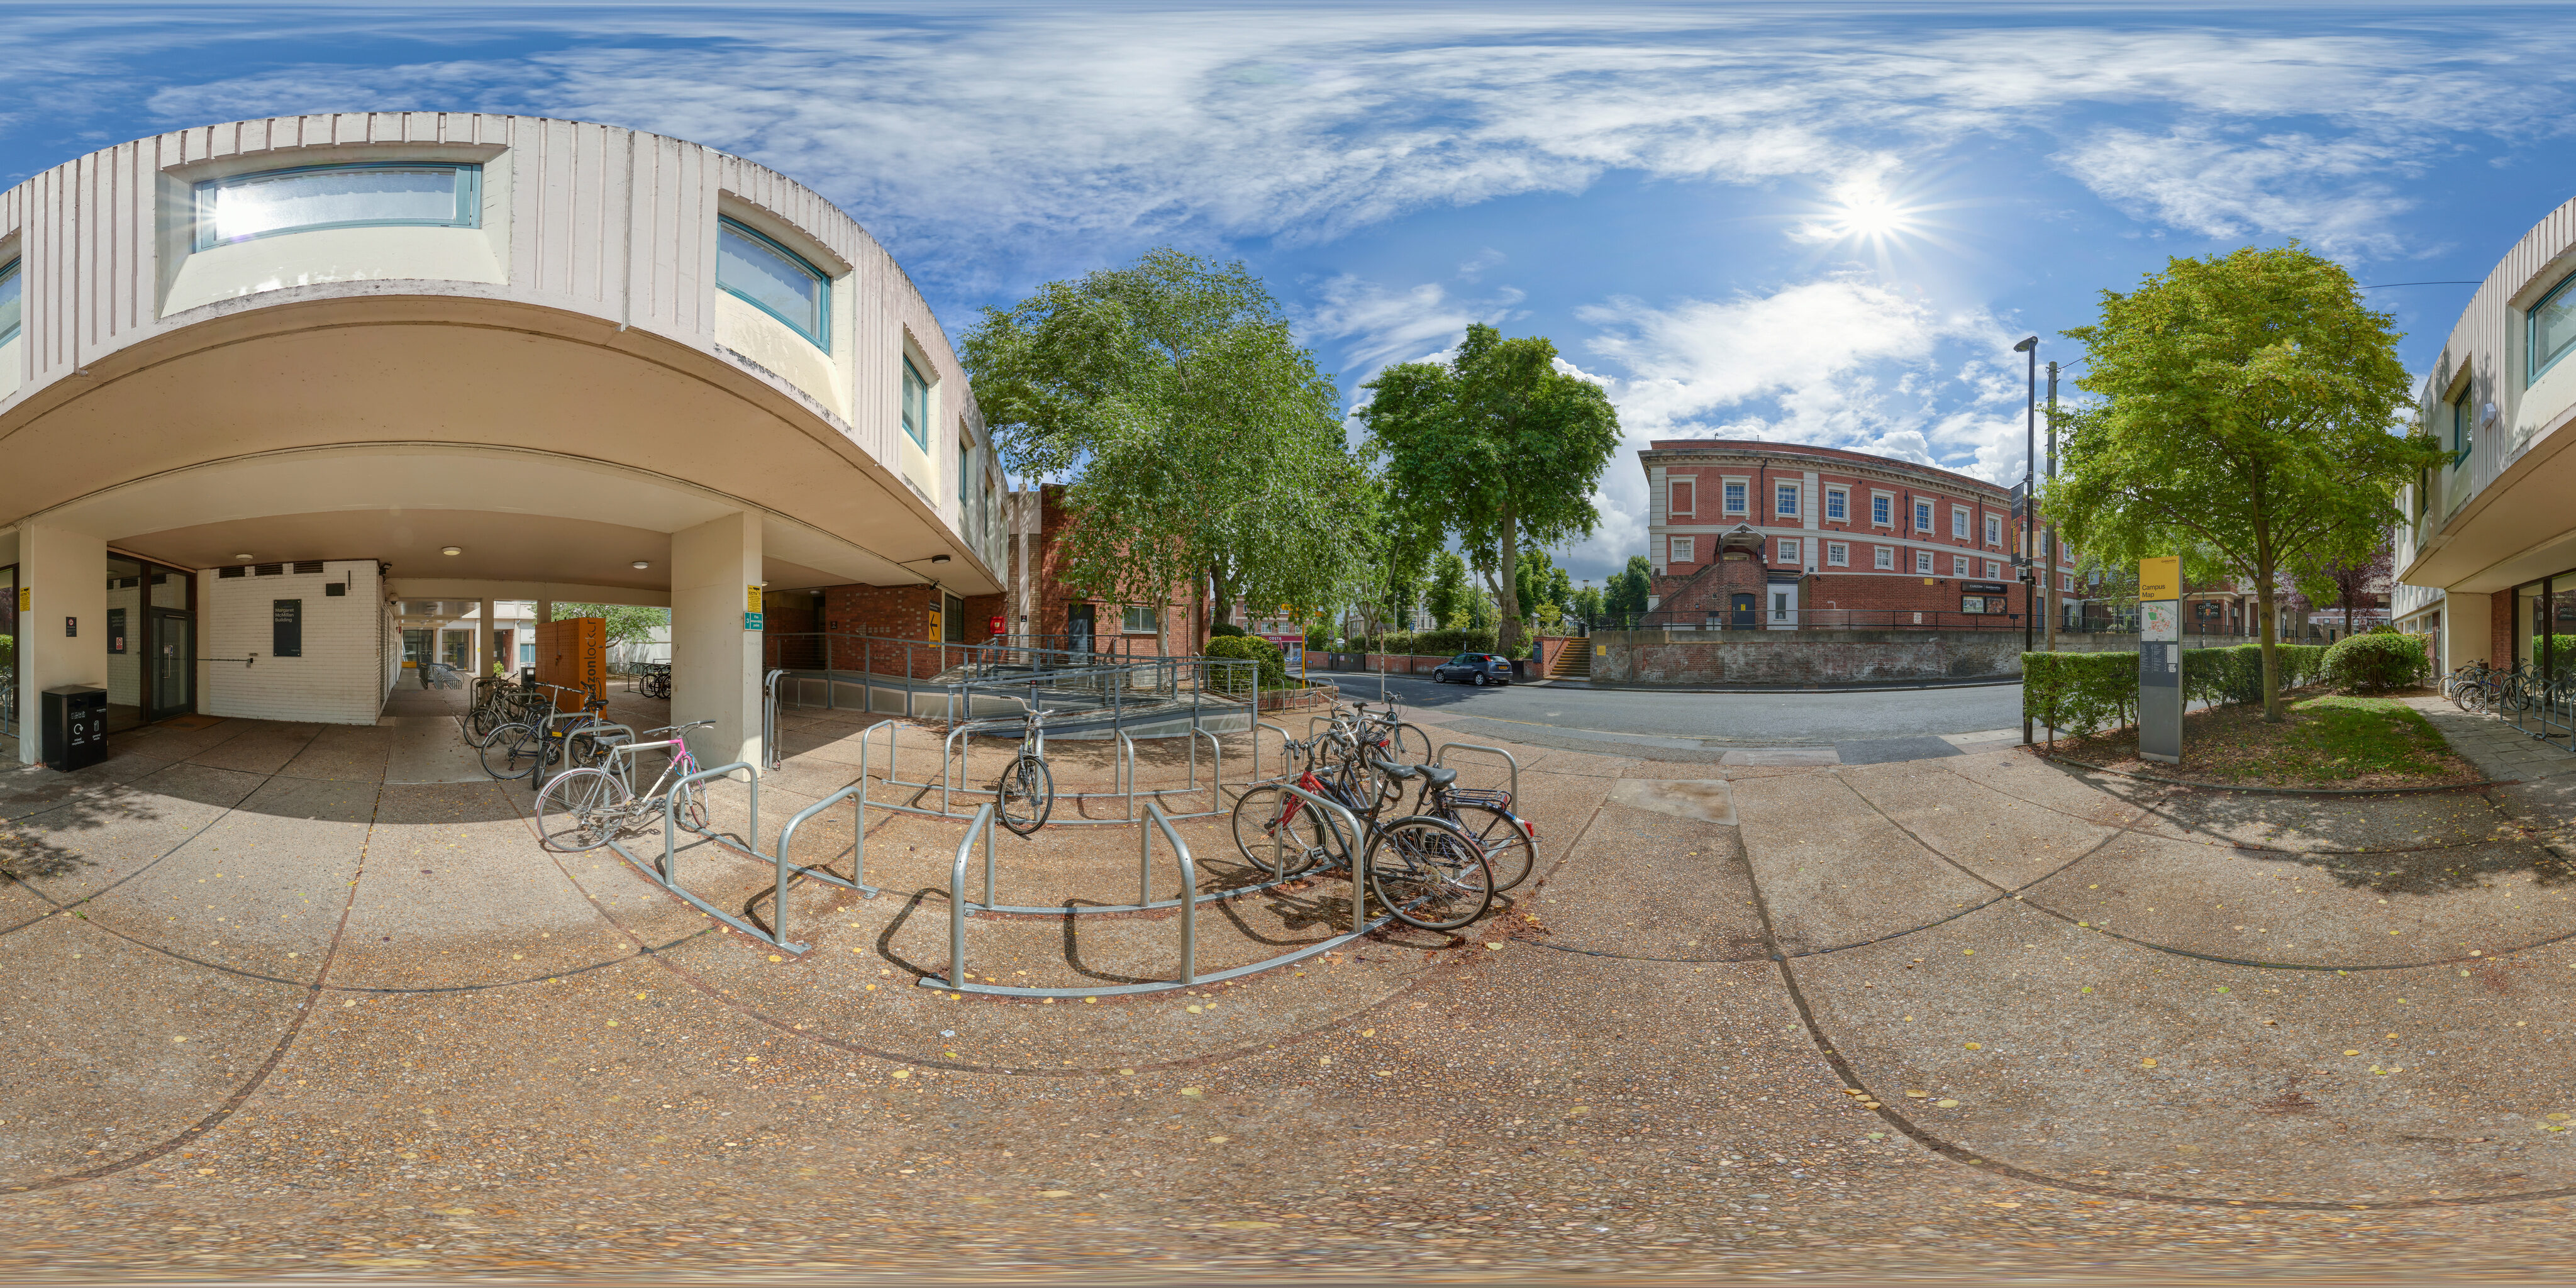 360 of Communal area outside the Margaret McMillan Building